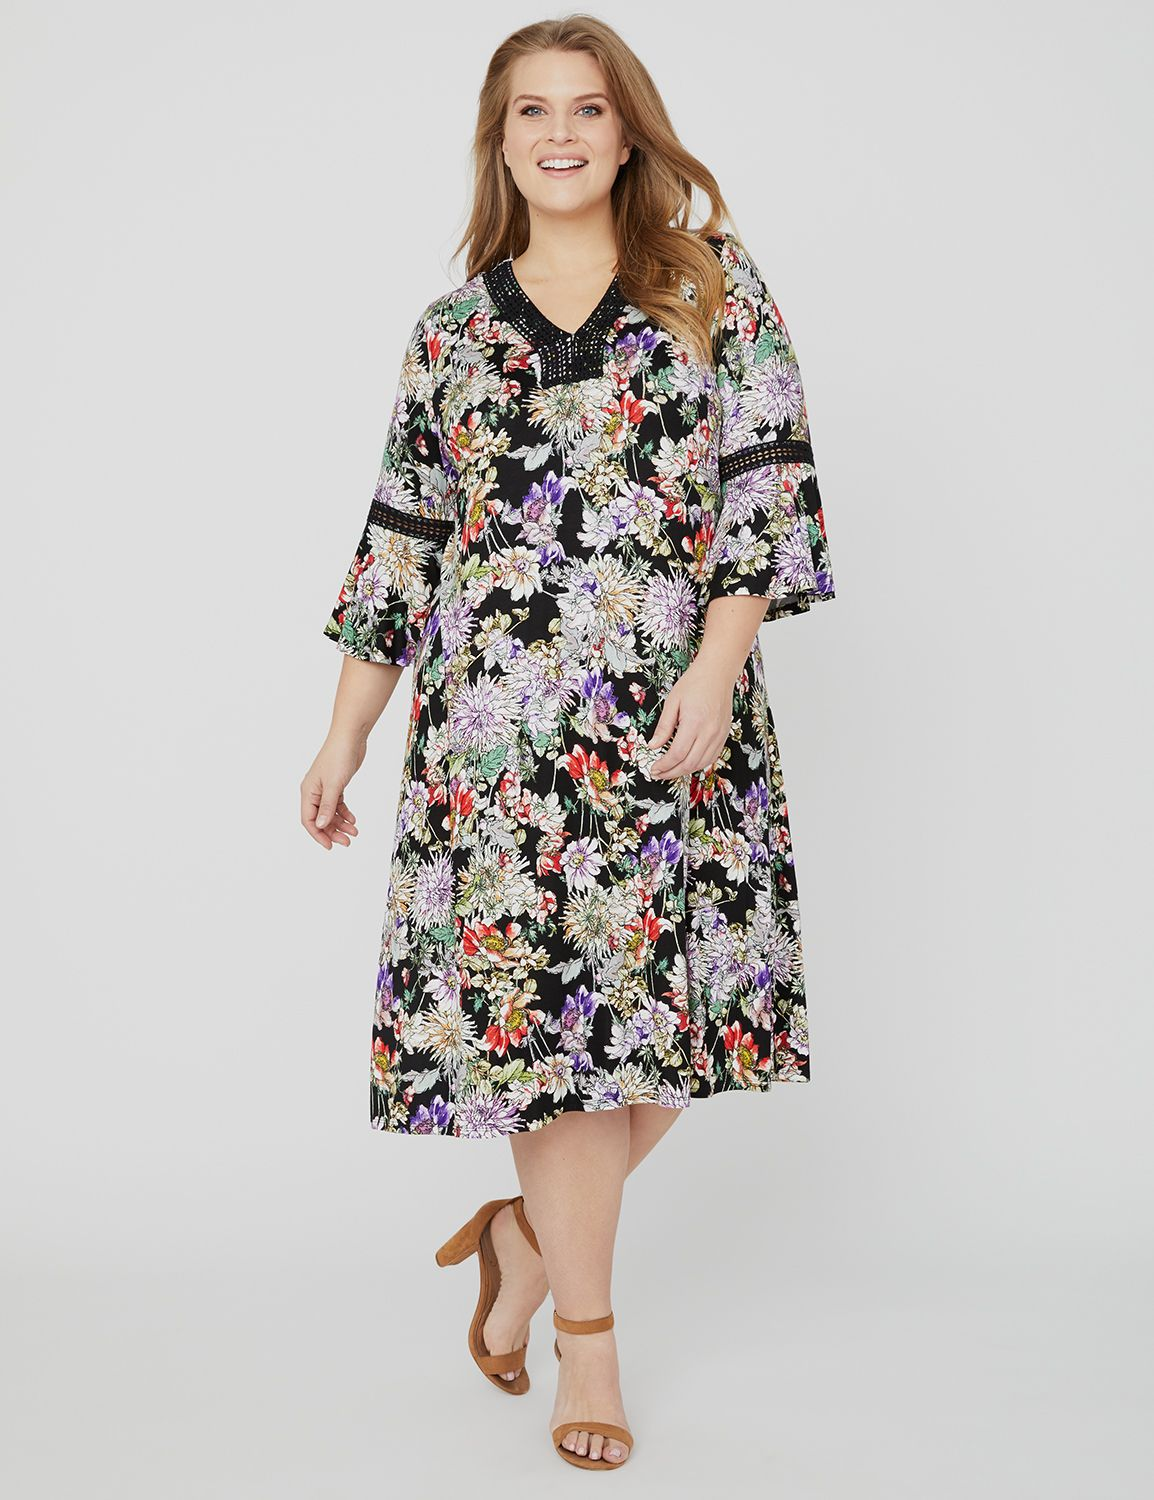 Floral Meadow Dress 1092650 Spense Floral Print Dress w MP-300102343